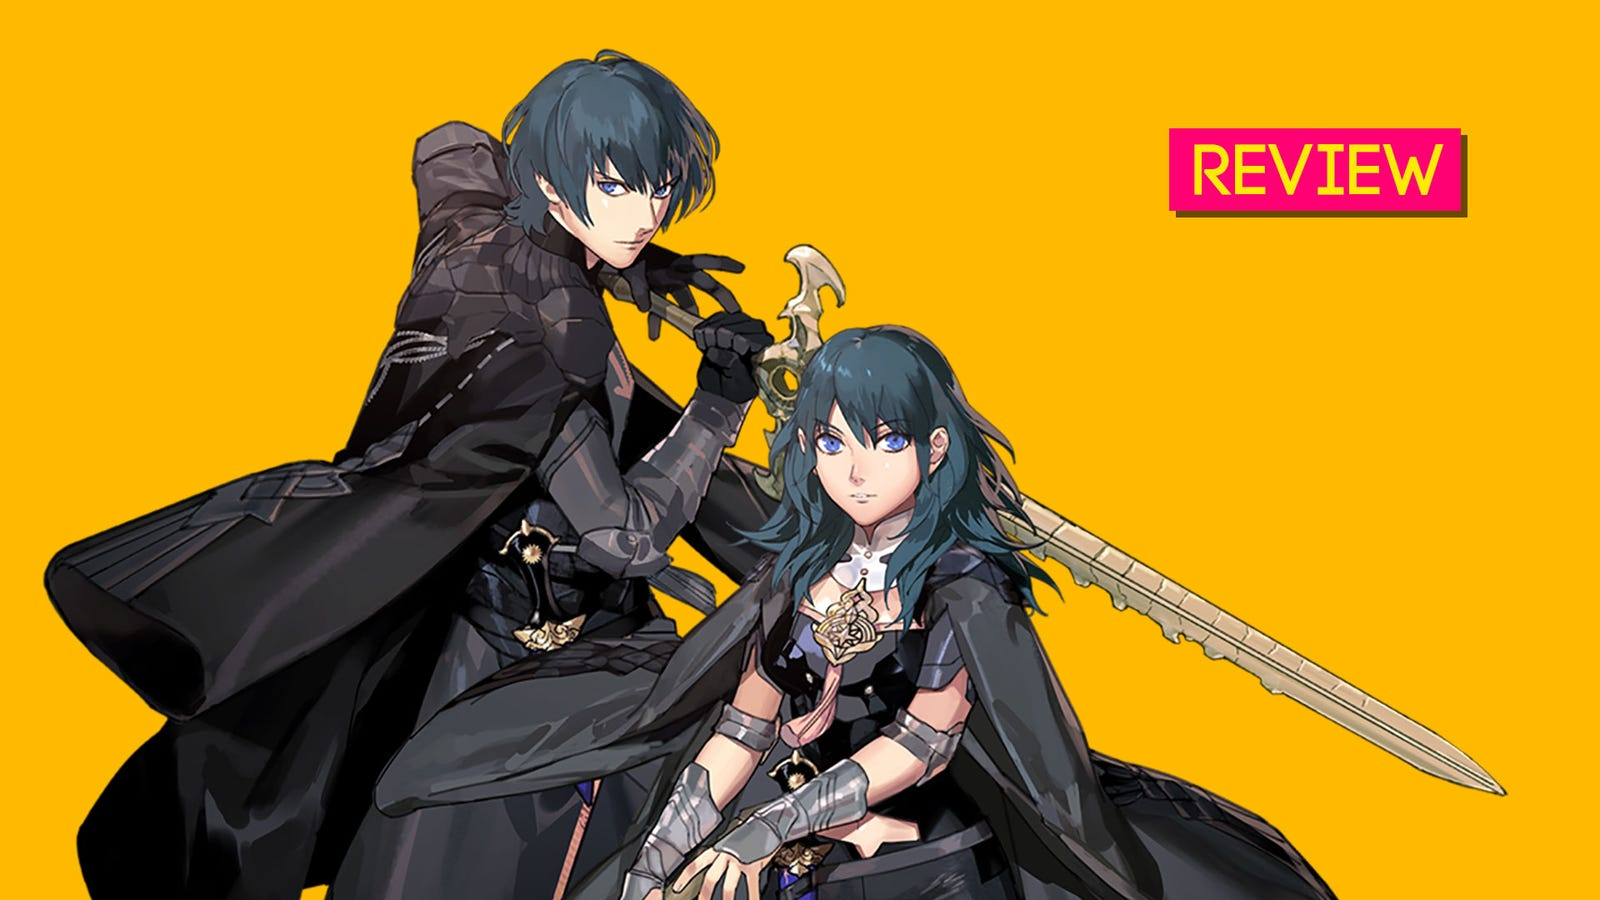 Fire Emblem: Three Houses: The Kotaku Review